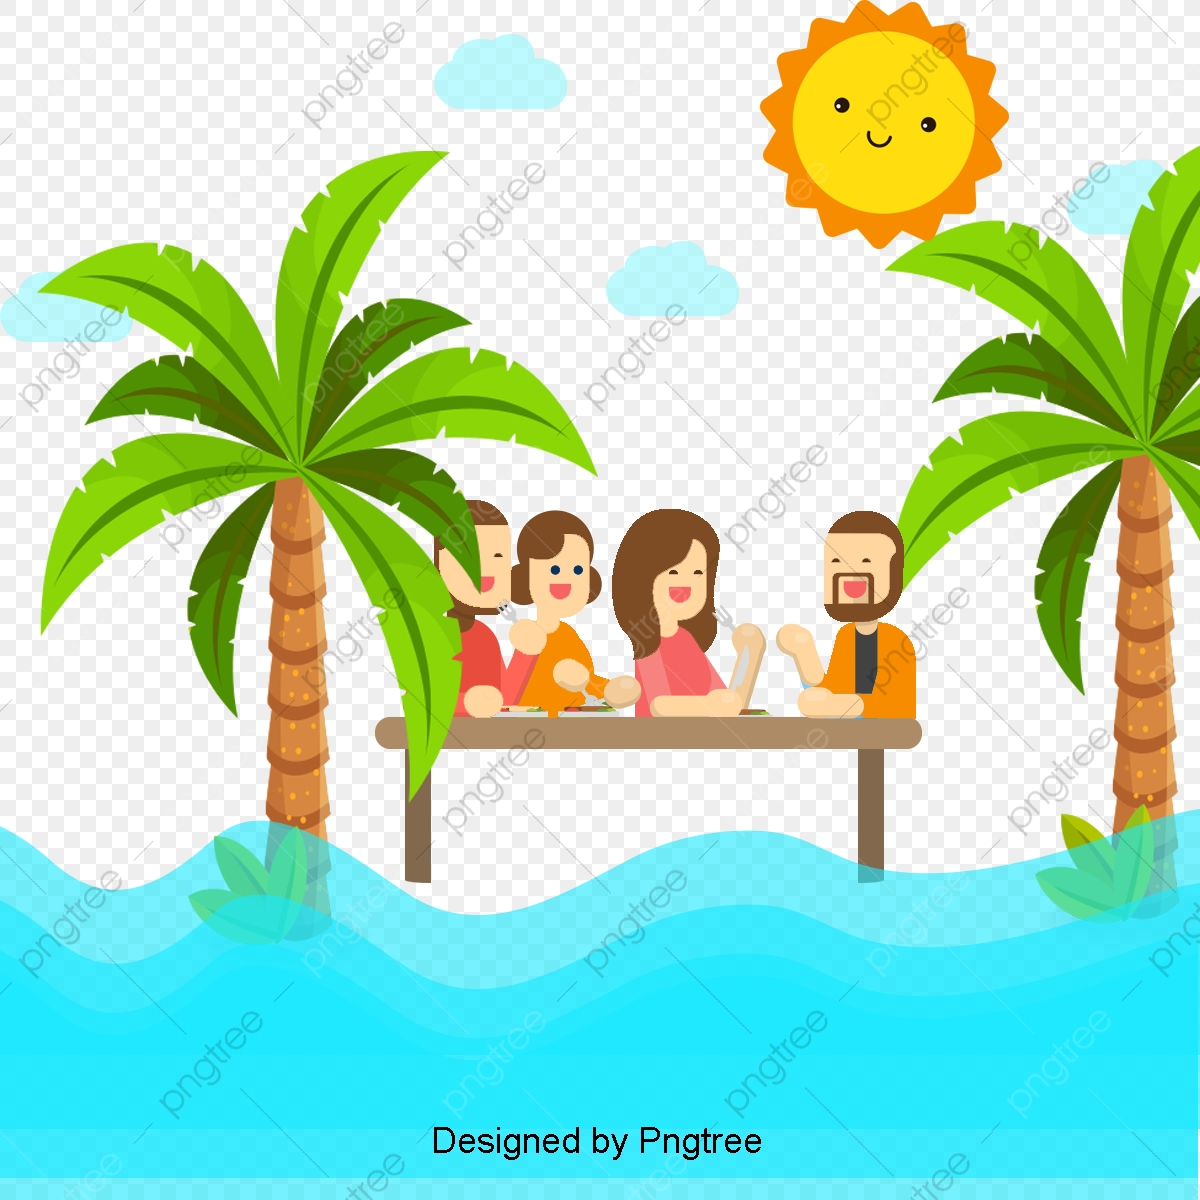 Cartoon Simple Family Travel Design Family Clipart Family Romance Png Transparent Clipart Image And Psd File For Free Download